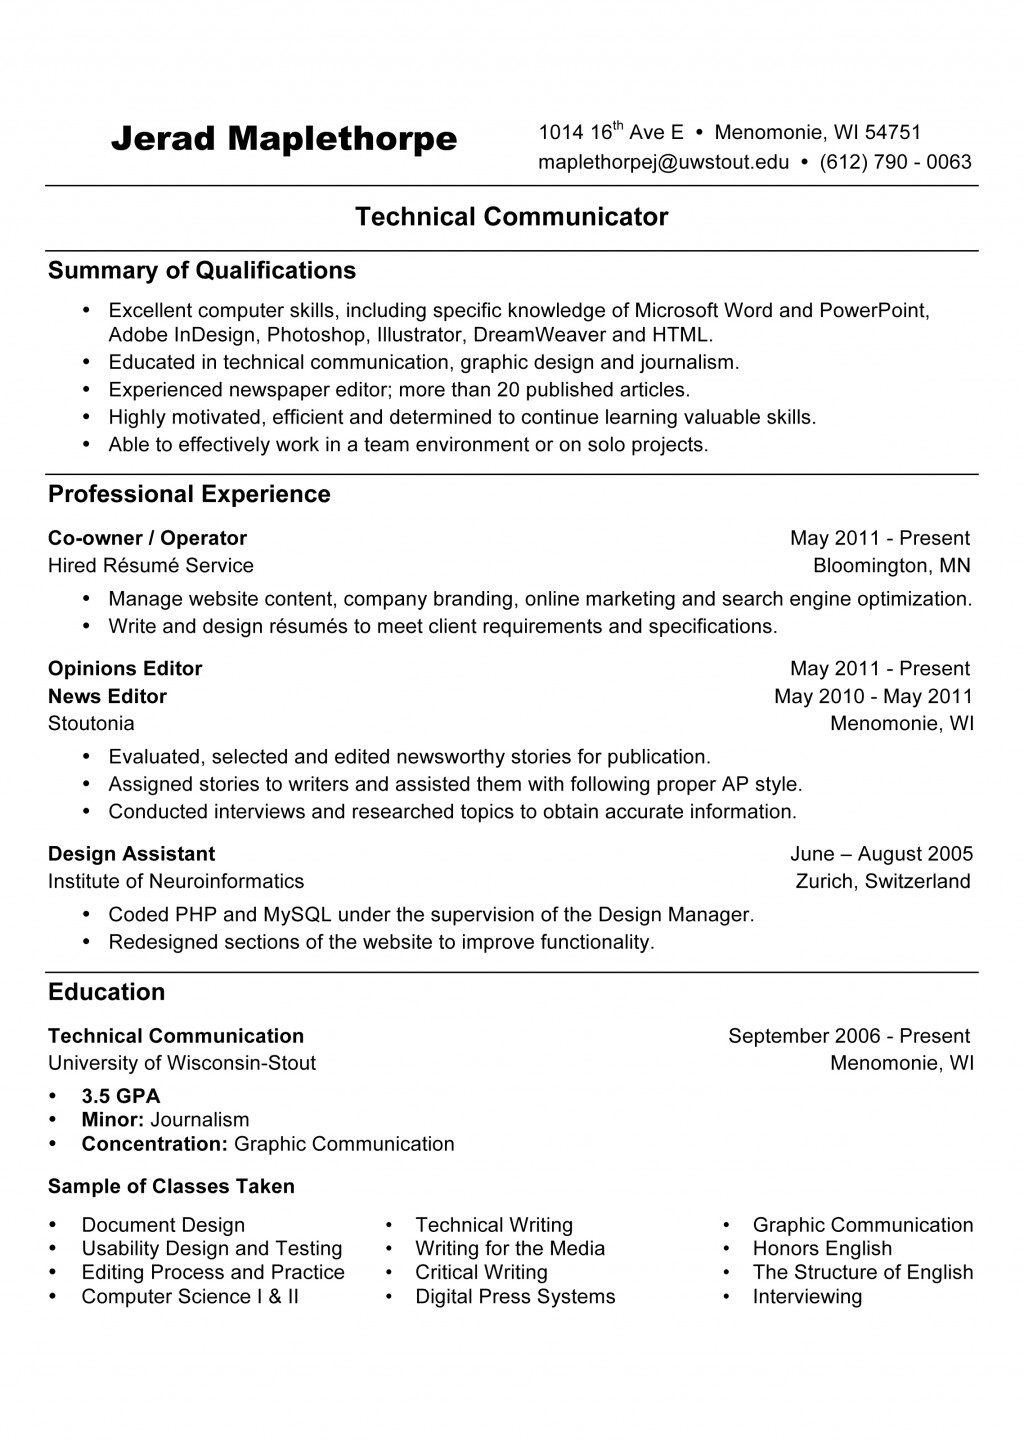 How To Add References In A Resume Résumé Writing References Available Upon Request